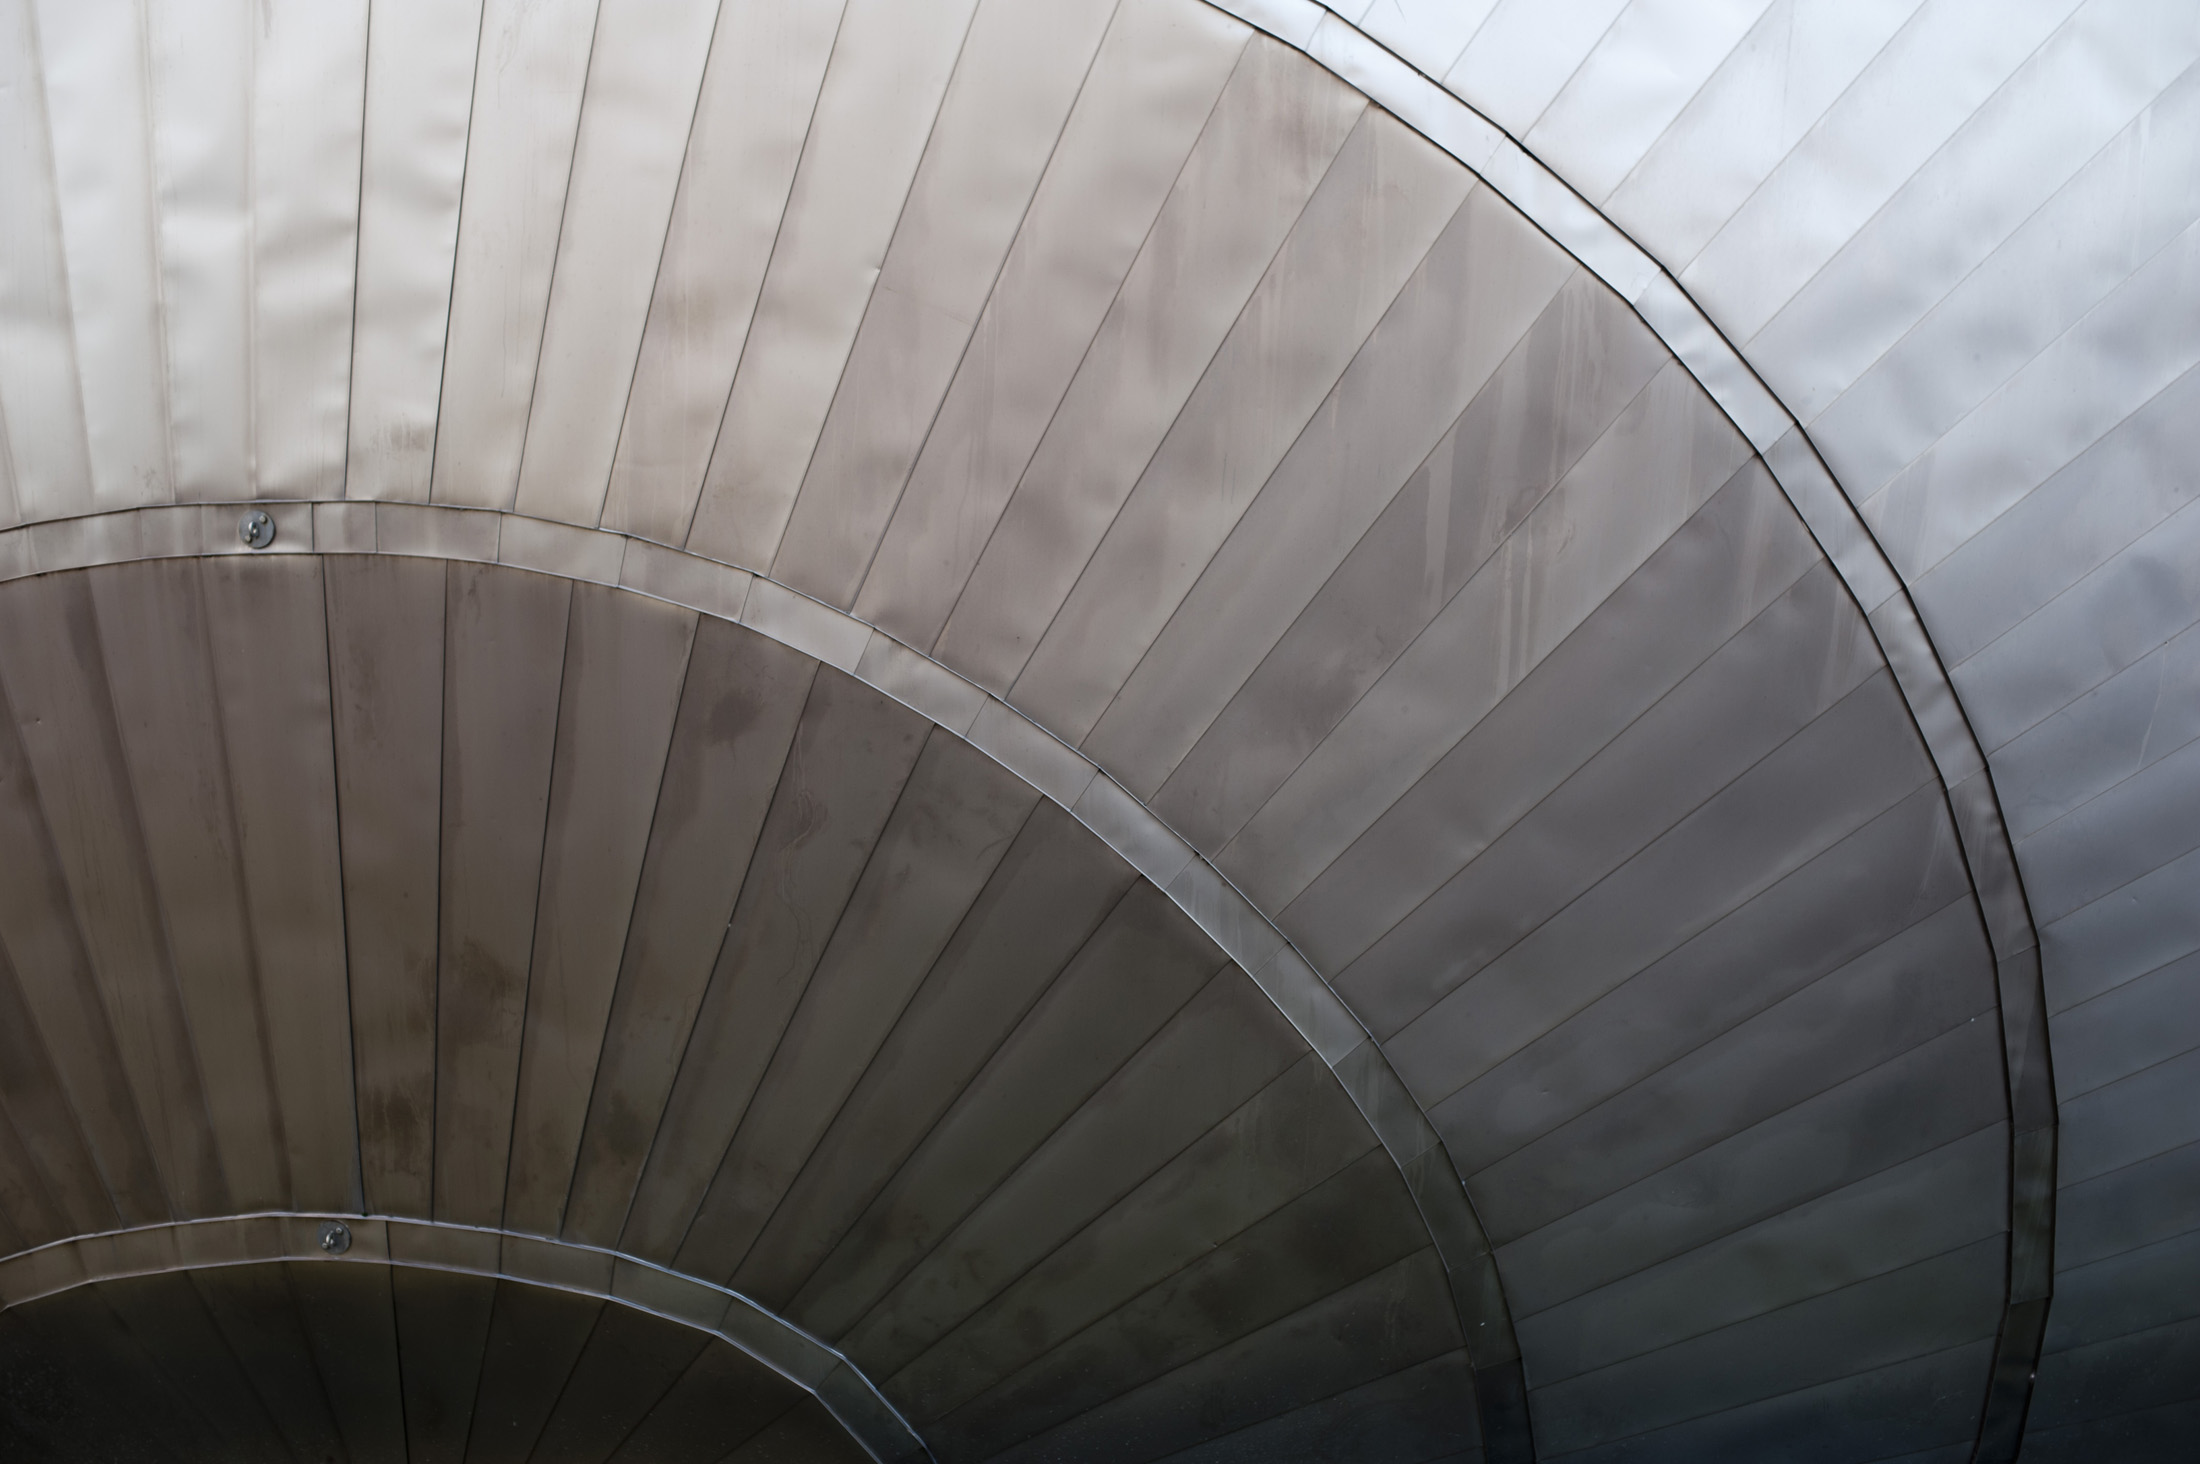 Glasgow IMAX cinema architectural design details showing the unusual titanium cladding covering the curved frame